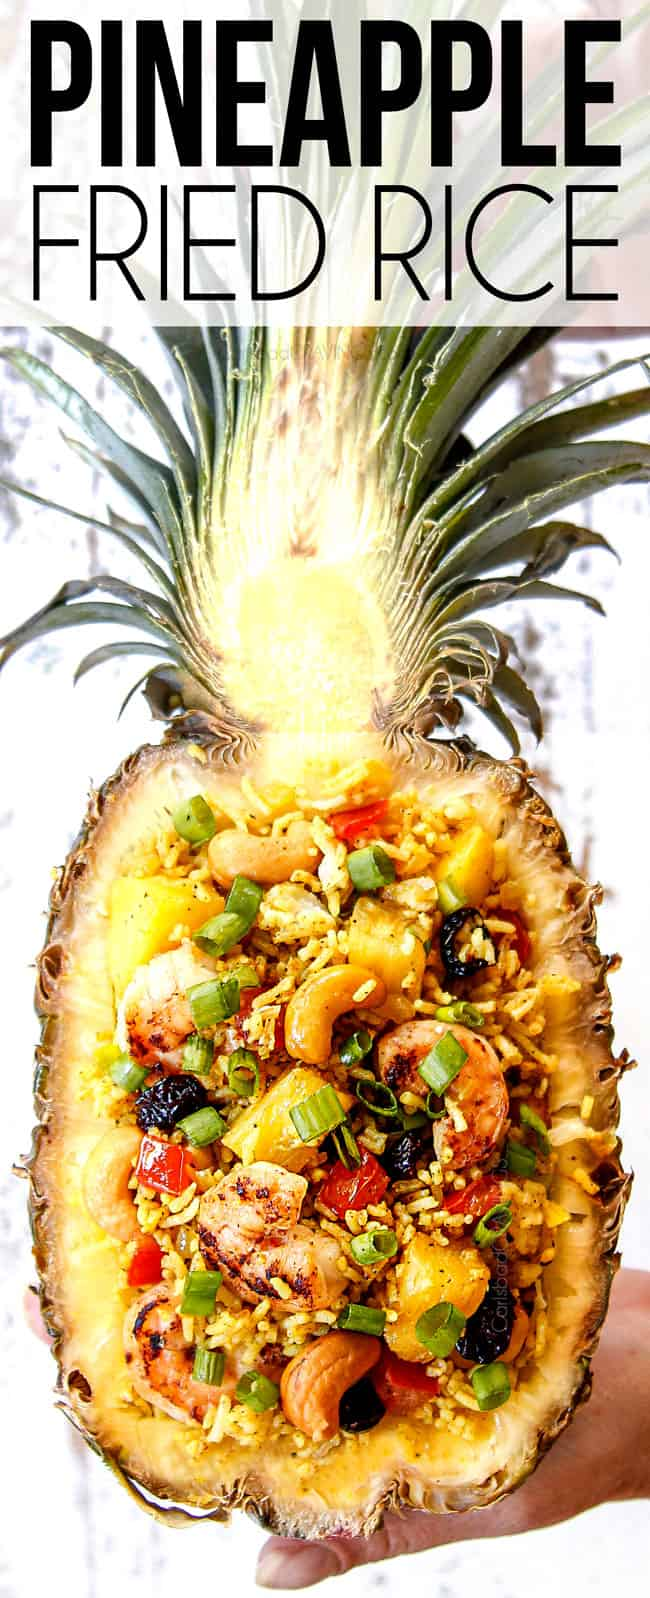 top view of pineapple fried rice in a hollowed out pineapple bowl